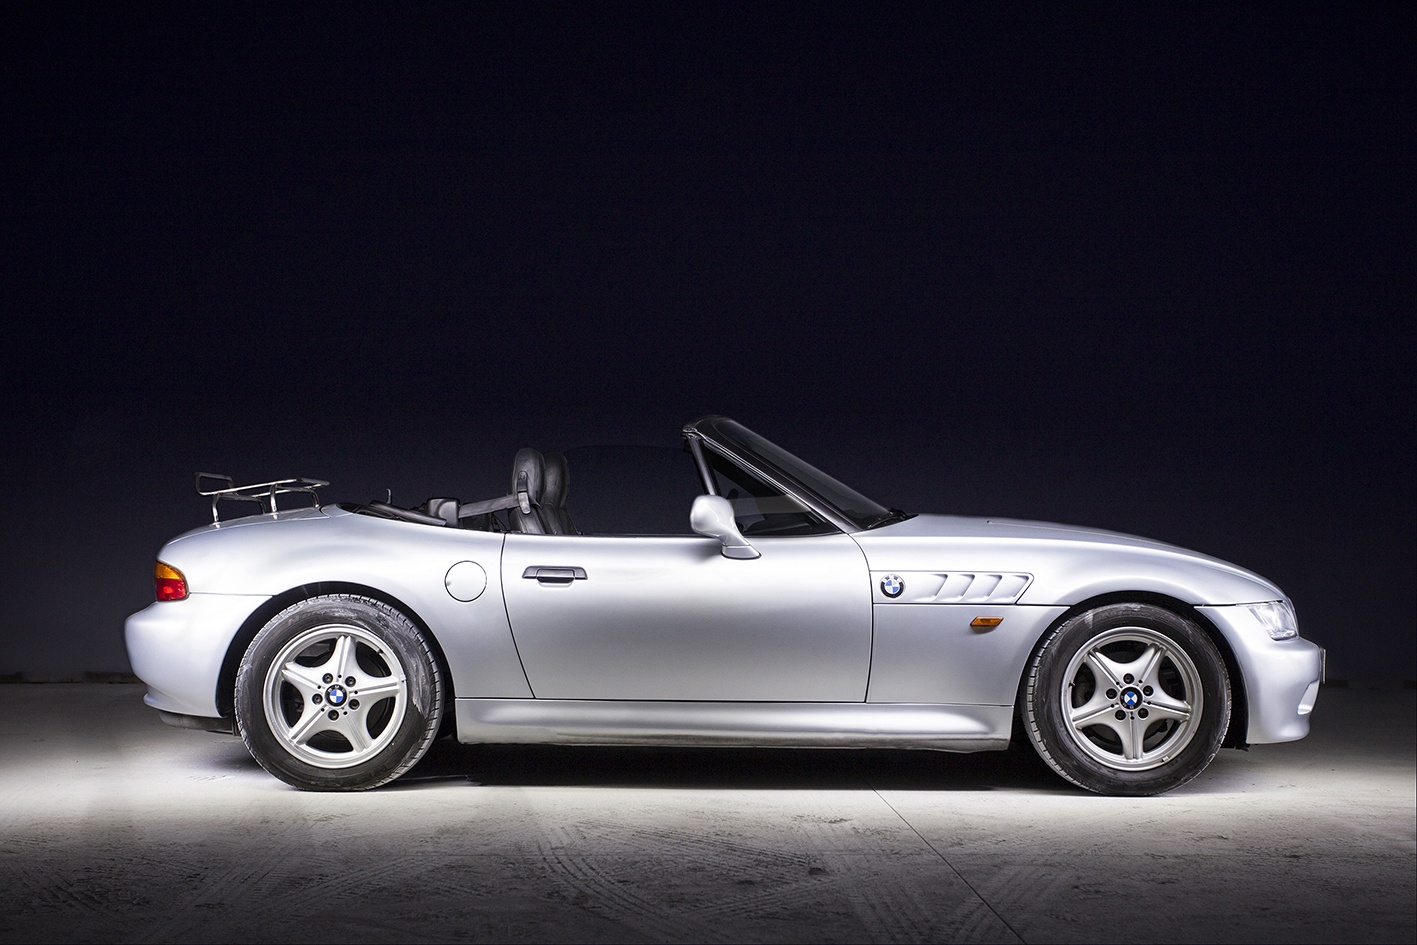 1997 Bmw Z3 1 8 First Serie 115 Ps Classic Driver Market